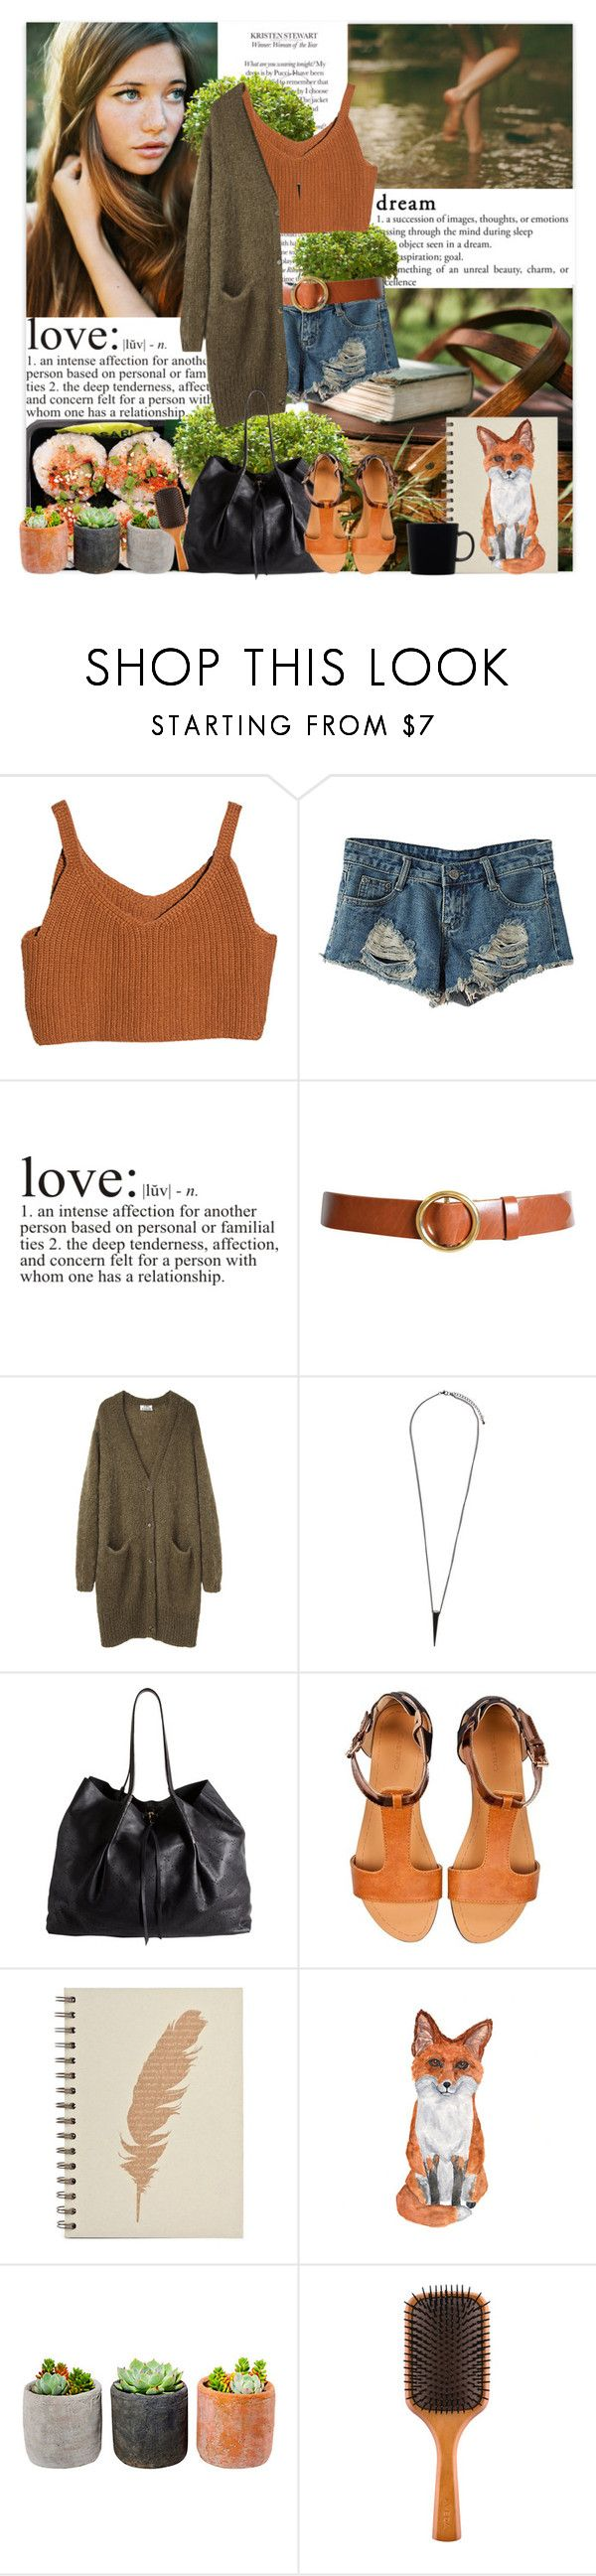 """""""M comme Mode de vie !!! 17"""" by vicky-soleil ❤ liked on Polyvore featuring WALL, Frame, Acne Studios, Pieces, Nina Ricci, Shop Succulents, Aveda and iittala"""